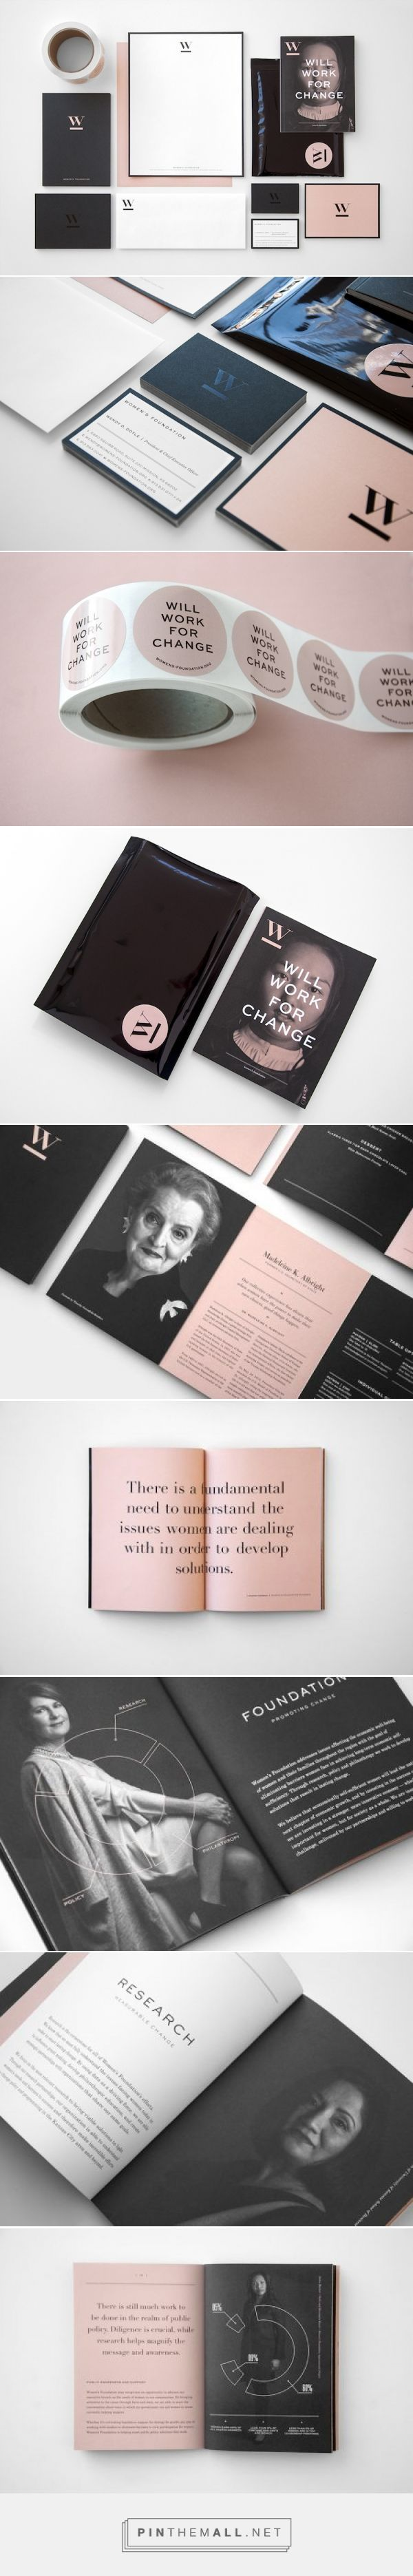 Award-Winning Brand Identity Design: The Women's Foundation - Print Magazine #userexperience